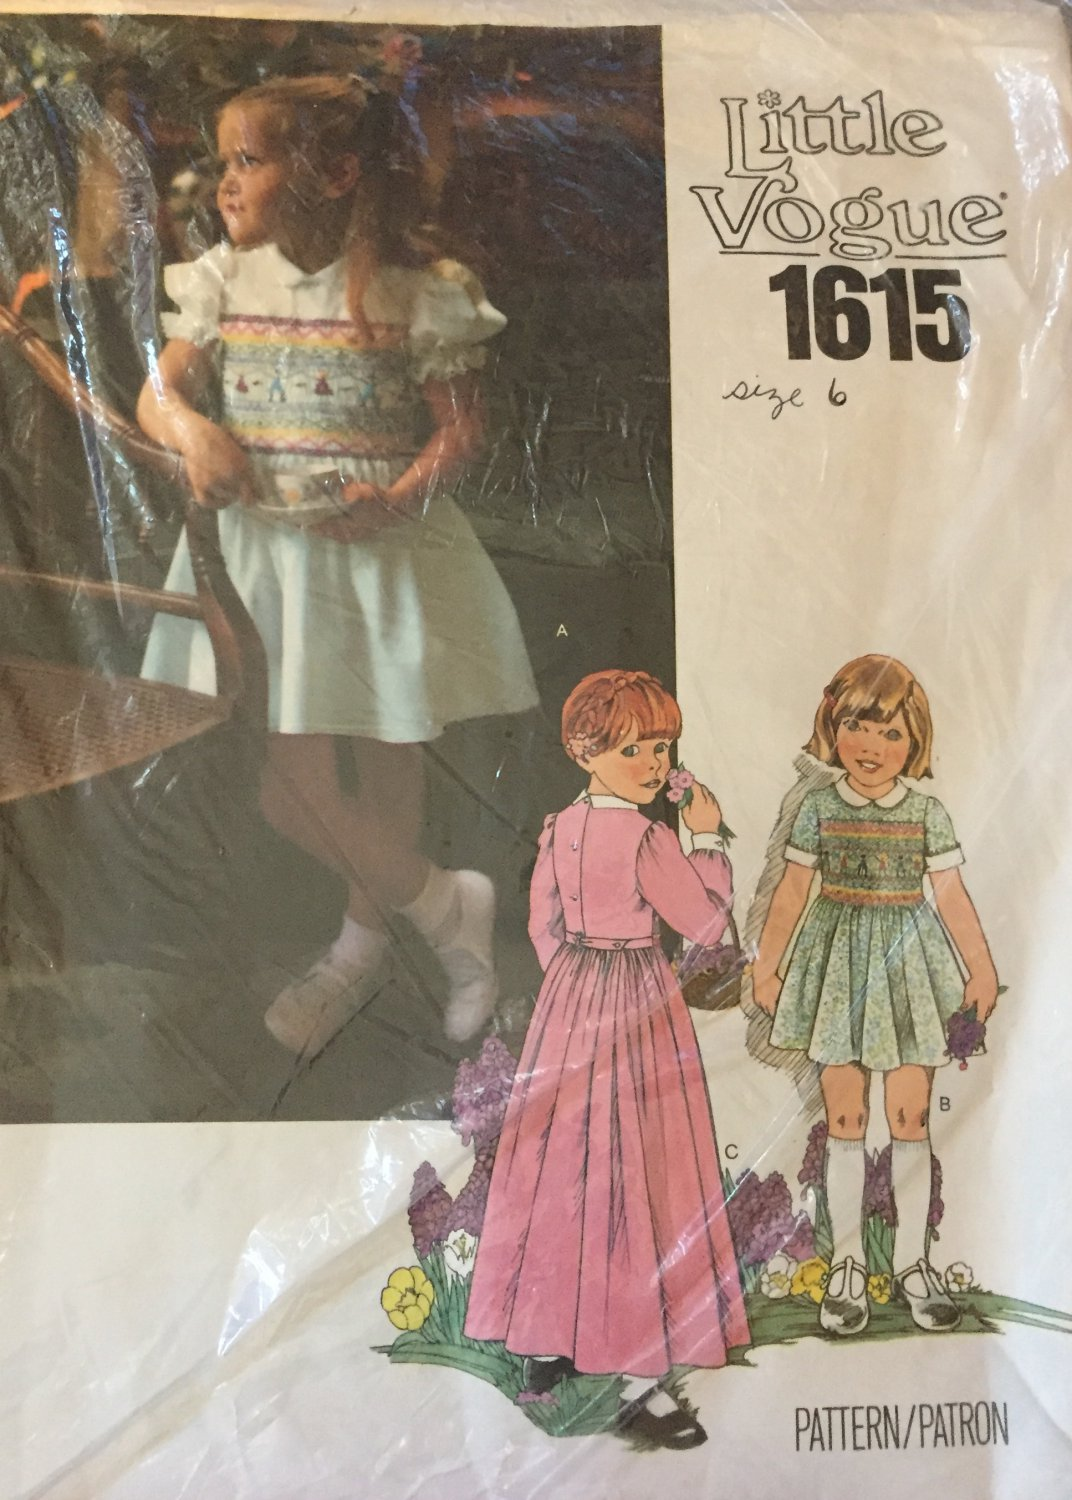 Sewing Pattern Little Vogue 1615 Girls Dress with Full Bodice Smocking Unused Size 6